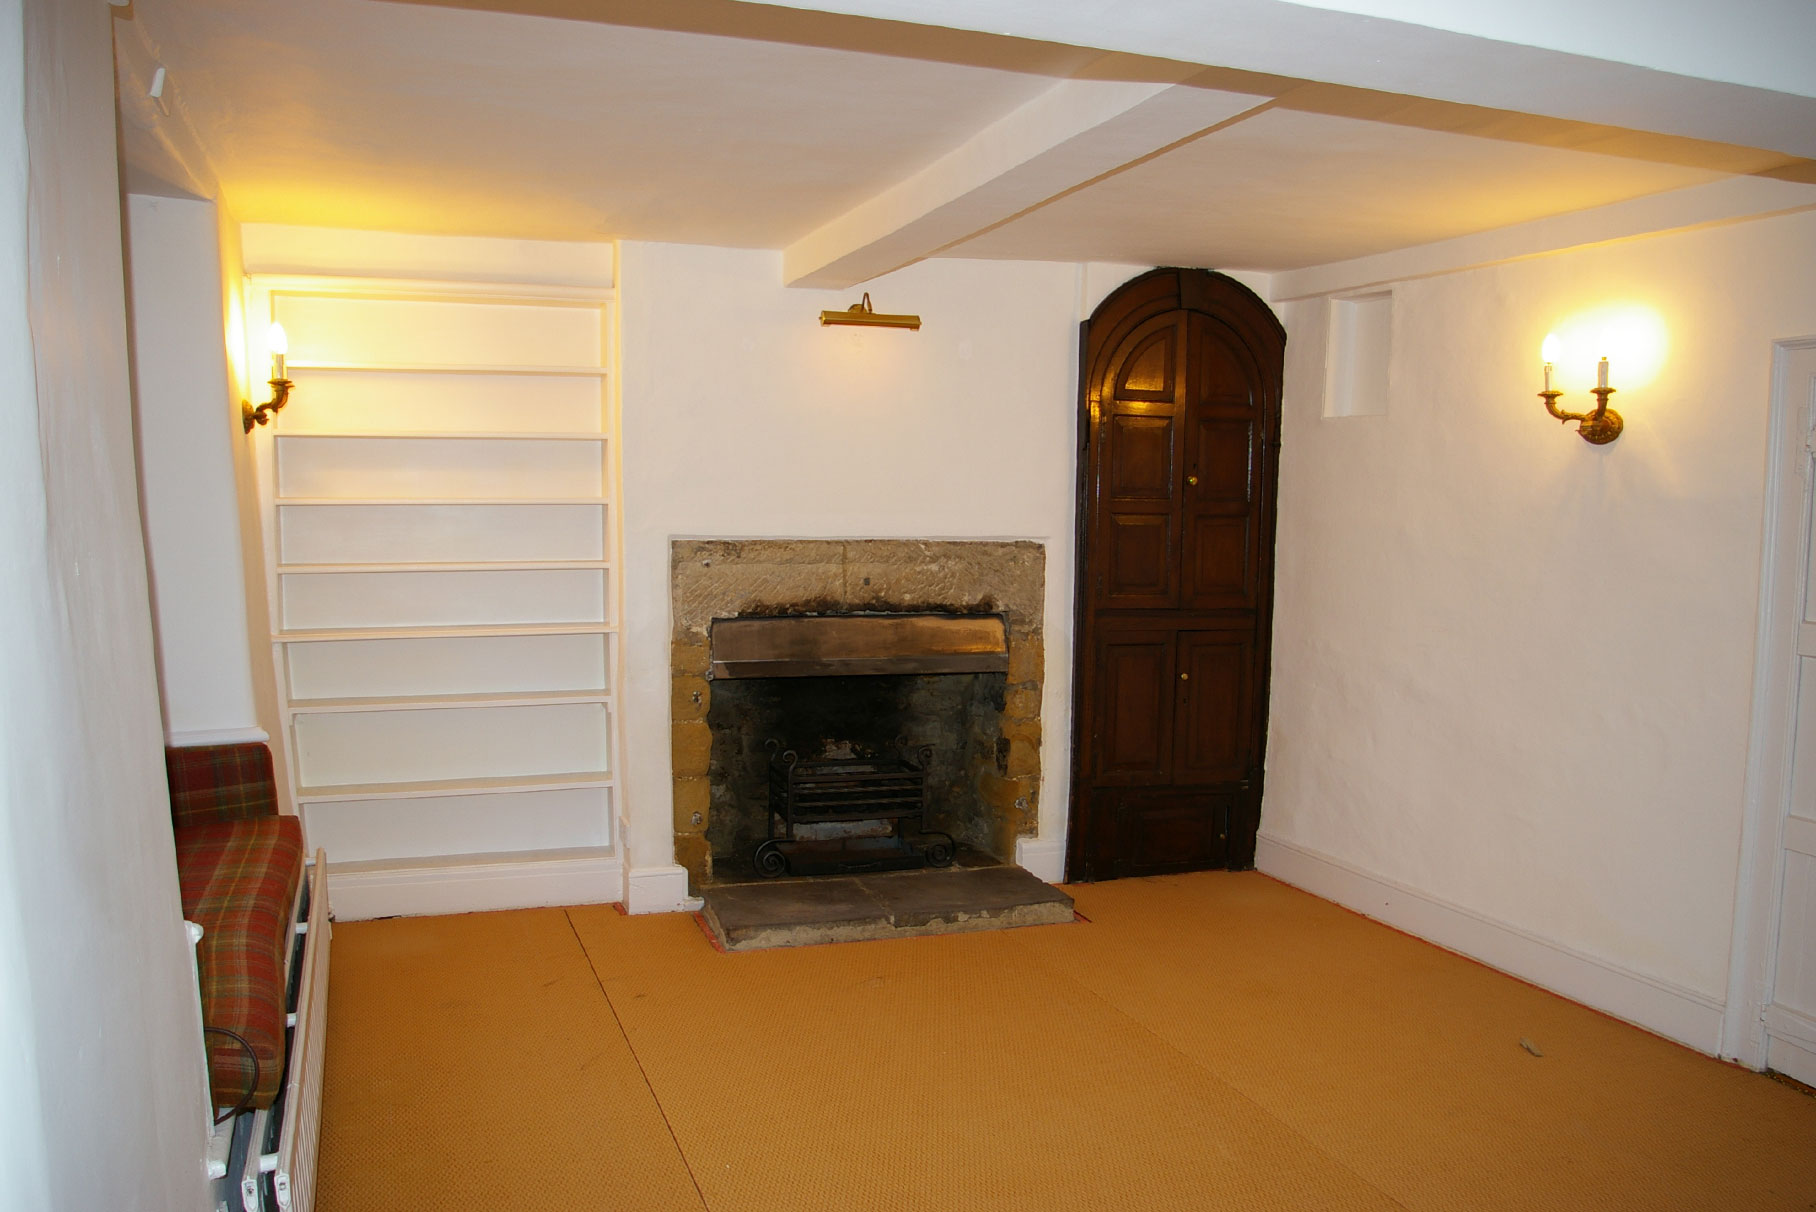 Chantry House - Bakewell - Snug room before construction L6